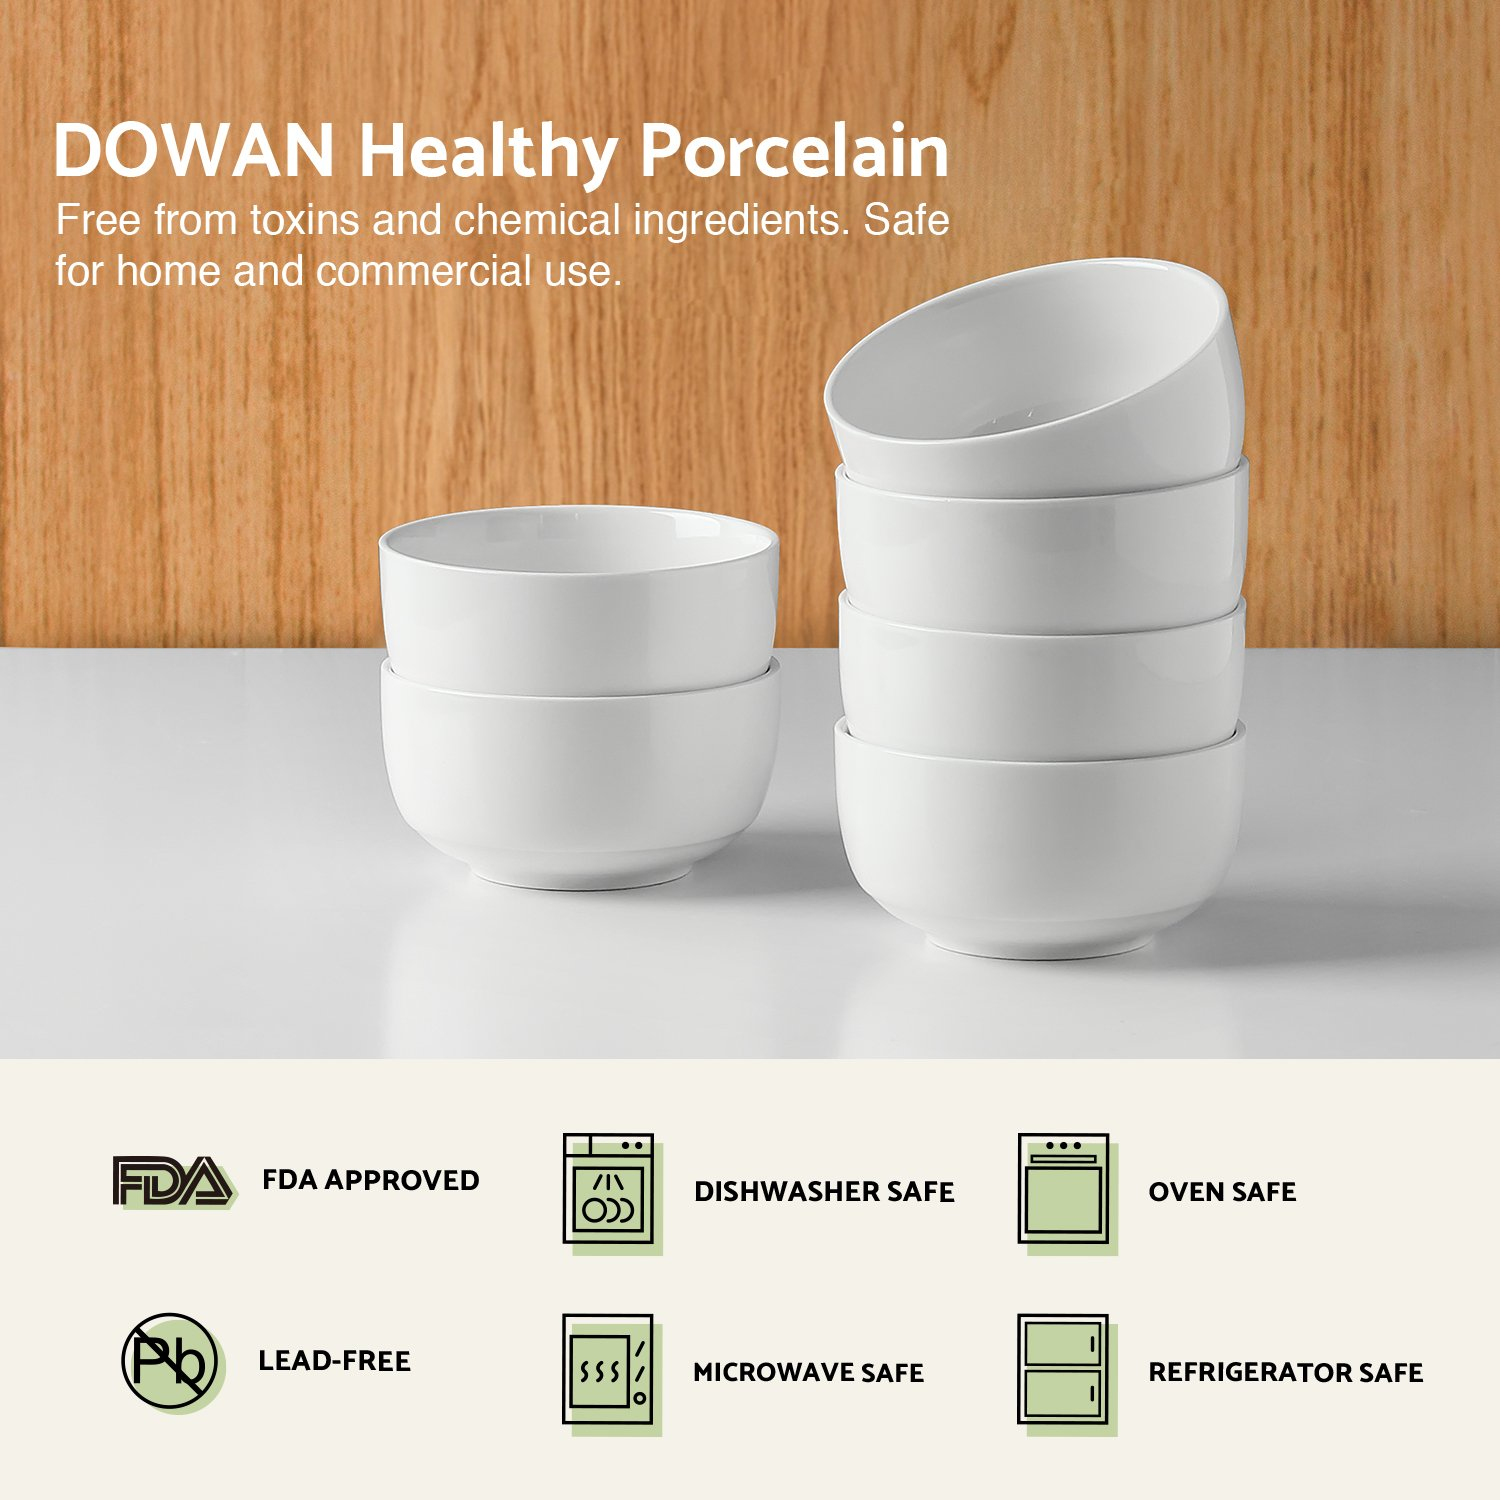 DOWAN 10-Ounce Porcelain Bowl Set - 6 Packs,White by DOWAN (Image #3)